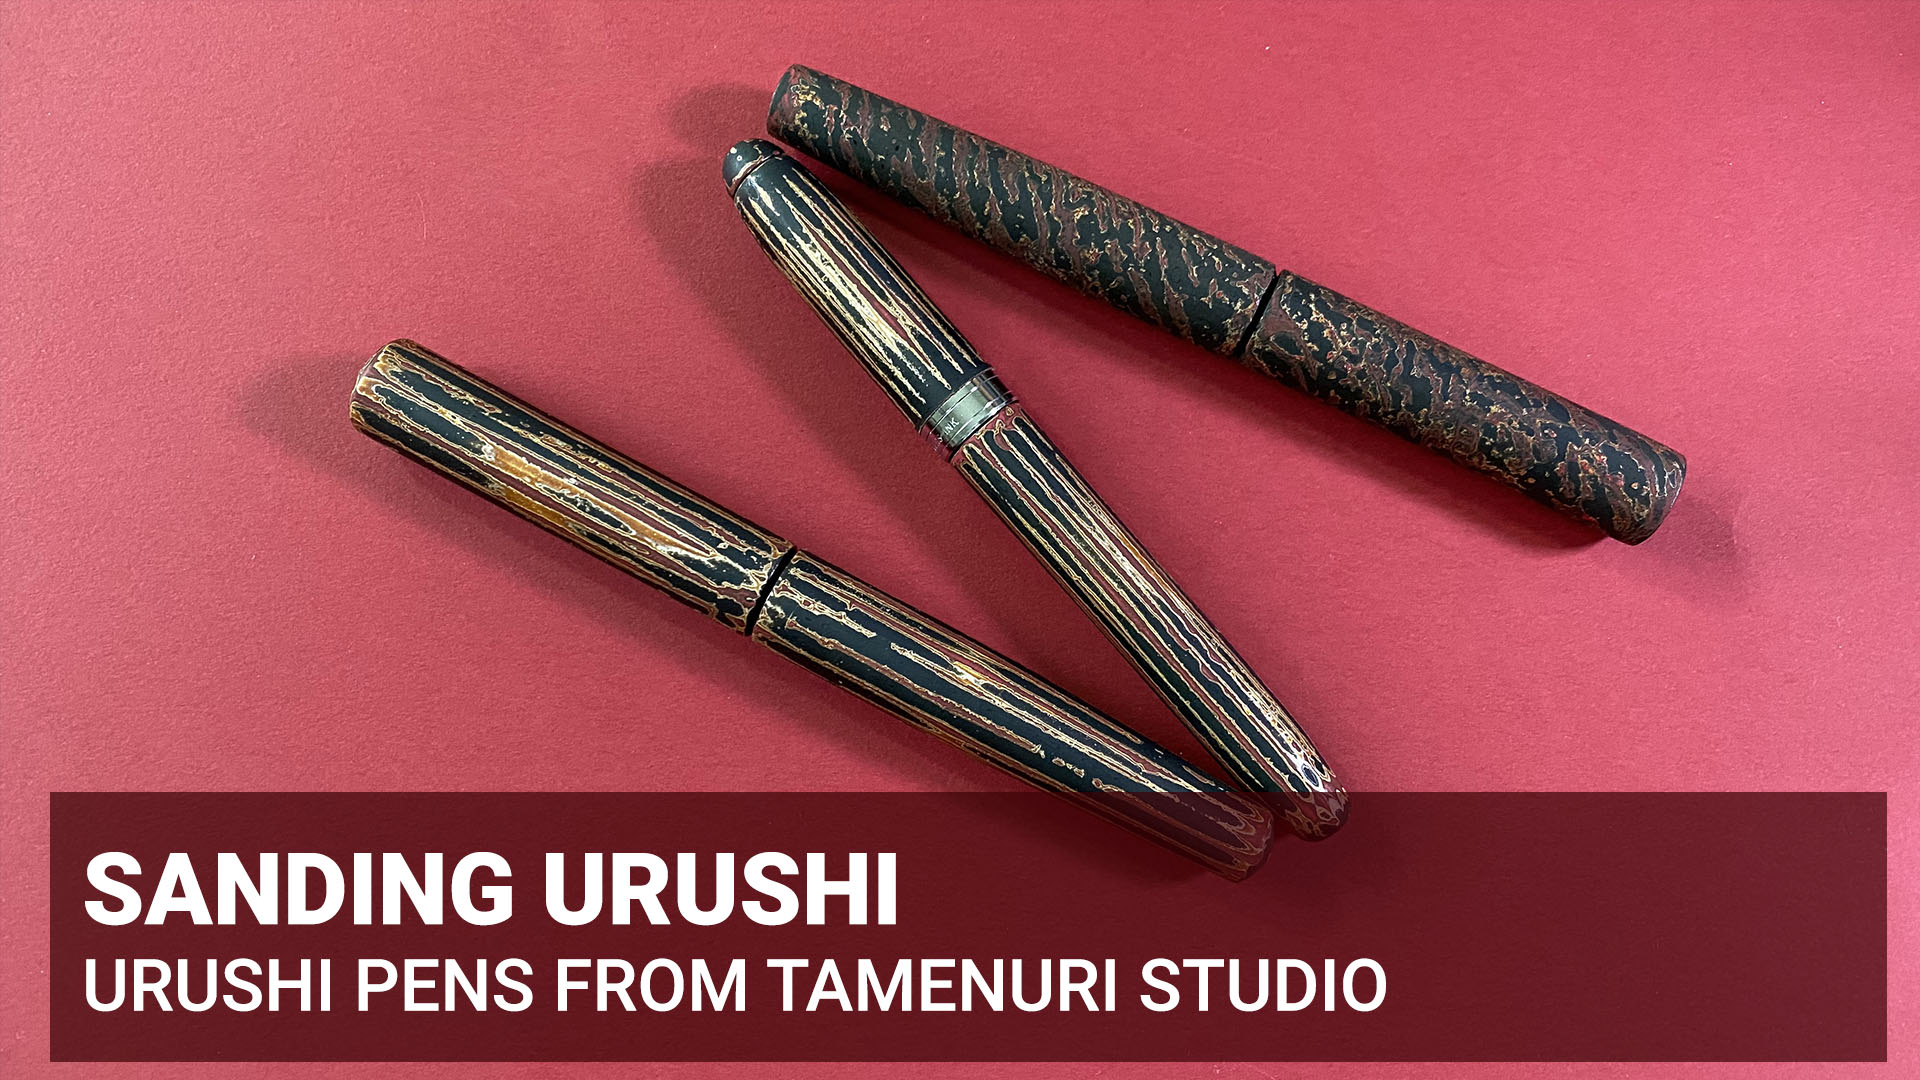 Sanding, sanding, sanding – majority of work with urushi